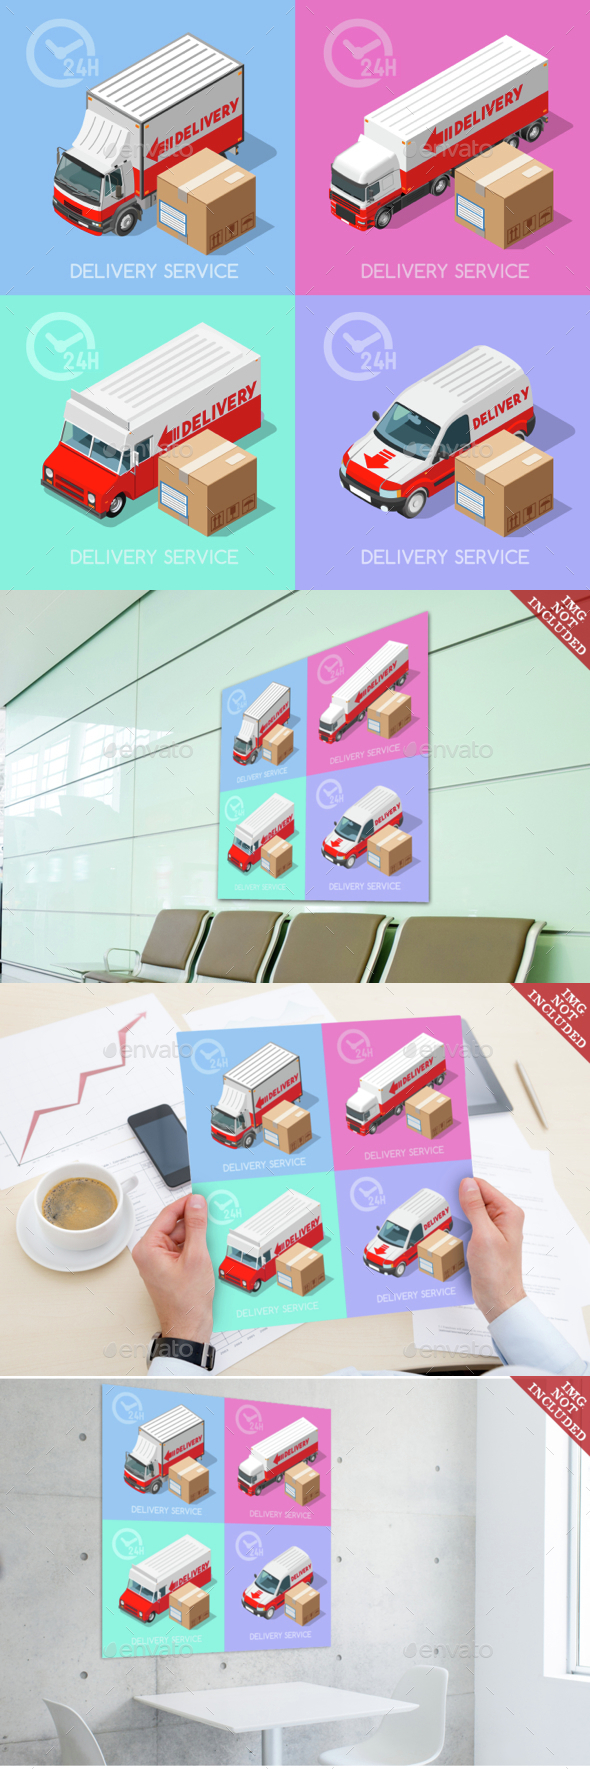 Delivery 07 Infographic Isometric - Health/Medicine Conceptual